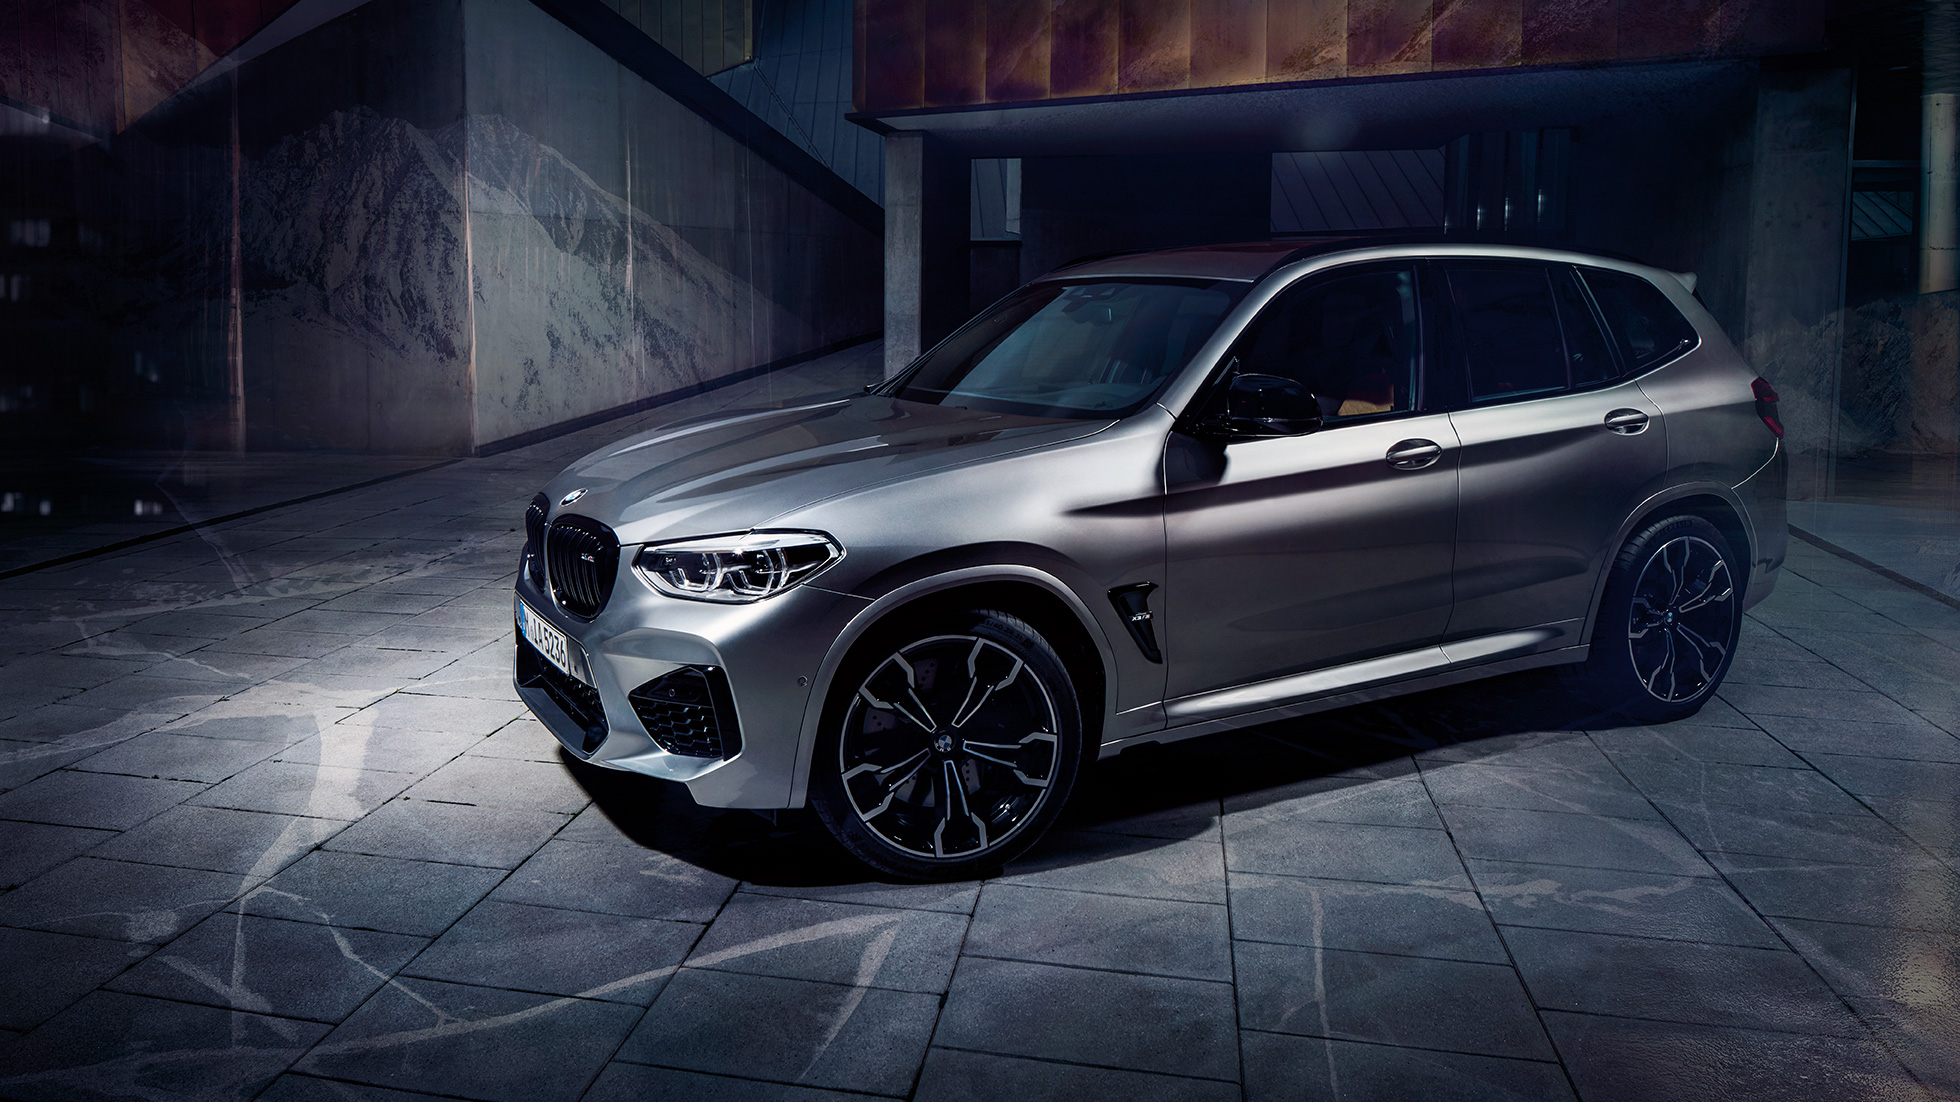 BMW X3 M Competition in Donington Grey metallic, exterior, side view.